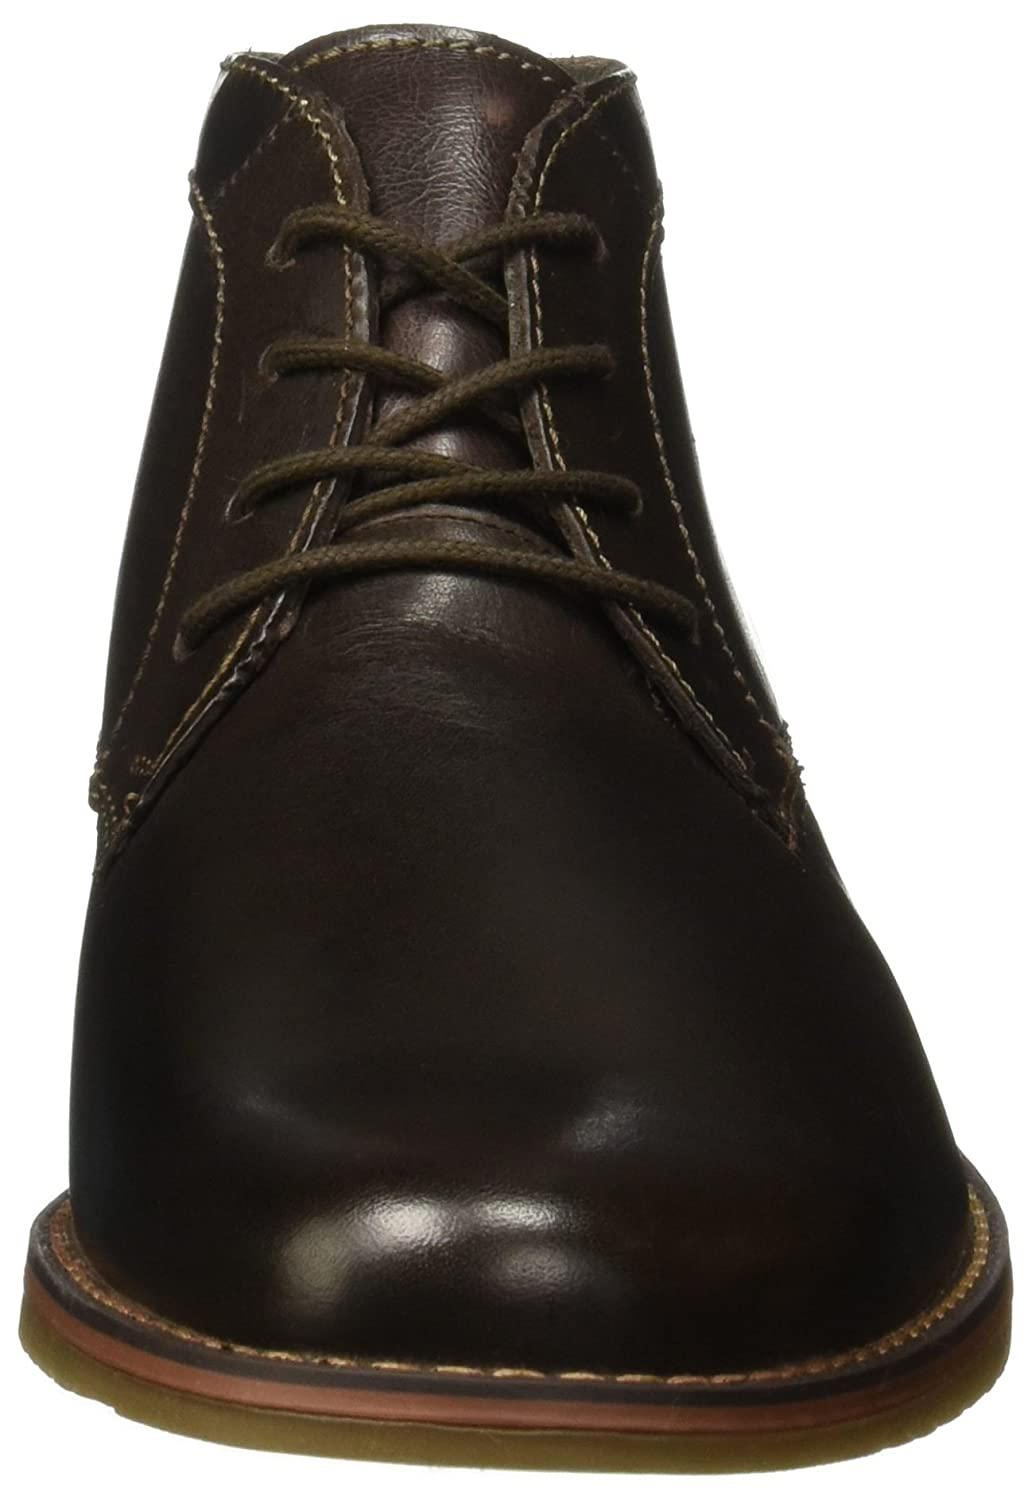 Amazon.com | Flexi Jeremy Mens Water Resistant Oxford Genuine Waxed Leather Lace Up Chukka Dress Boot | 92404 Chocolate | Shoes